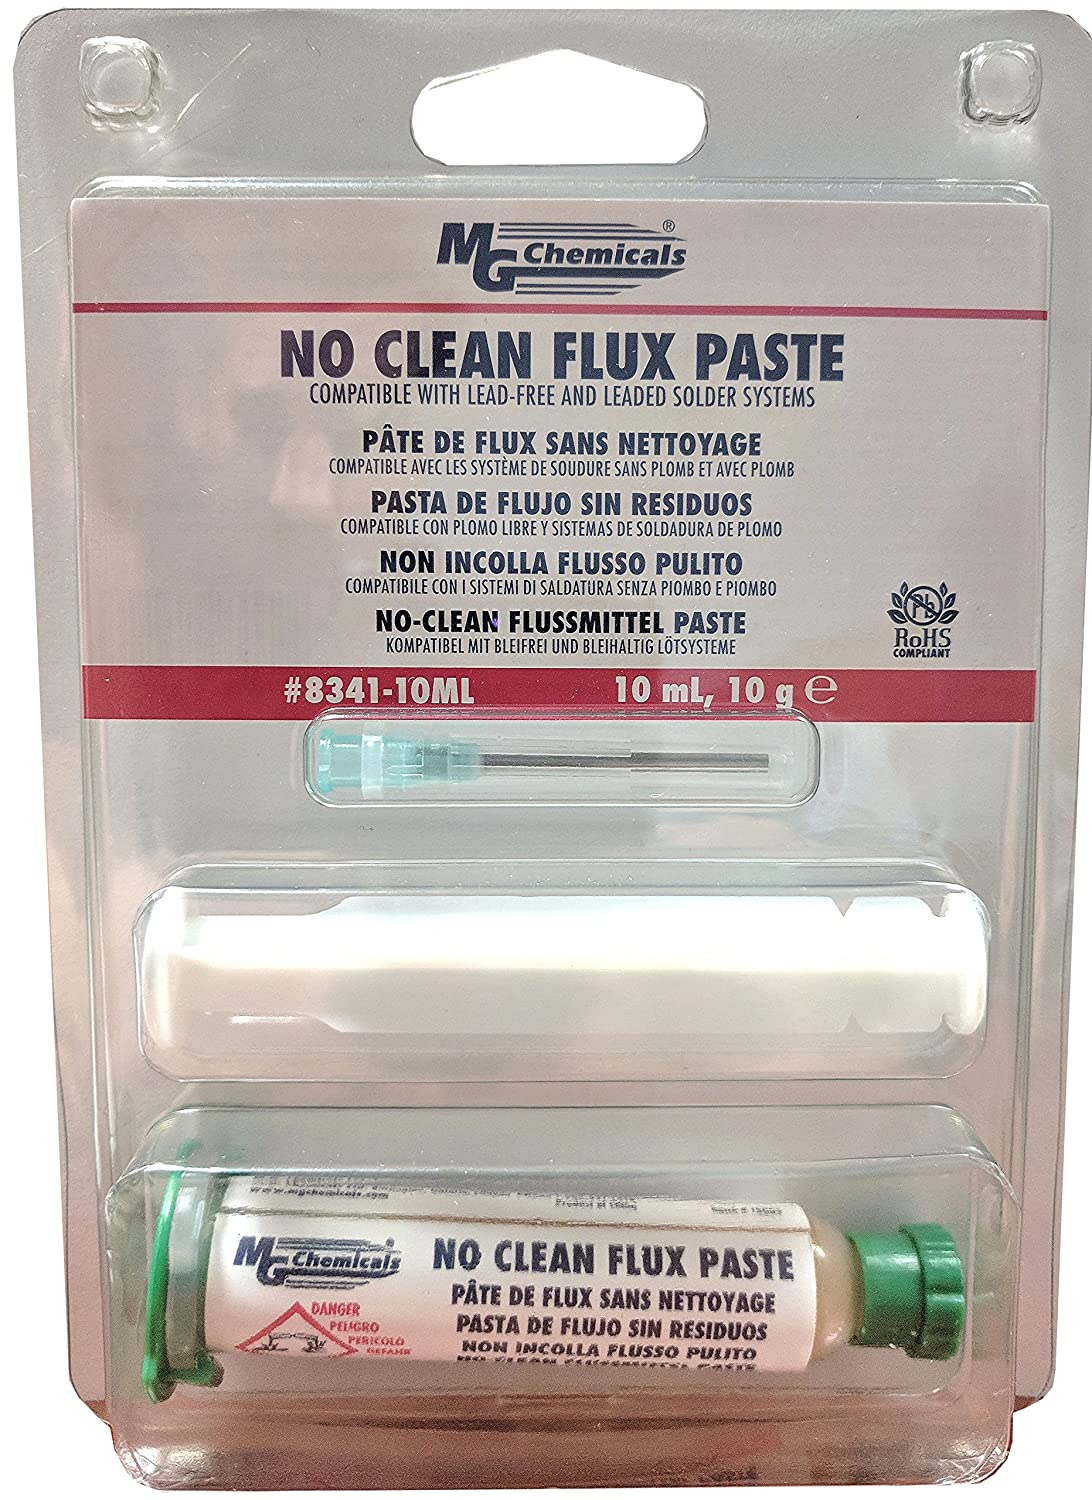 MG Chemicals 8341 No Clean Flux Paste, 10 milliliters Pneumatic Dispenser (Complete with Plunger & Dispensing Tip), 2 Pack - - Amazon.com